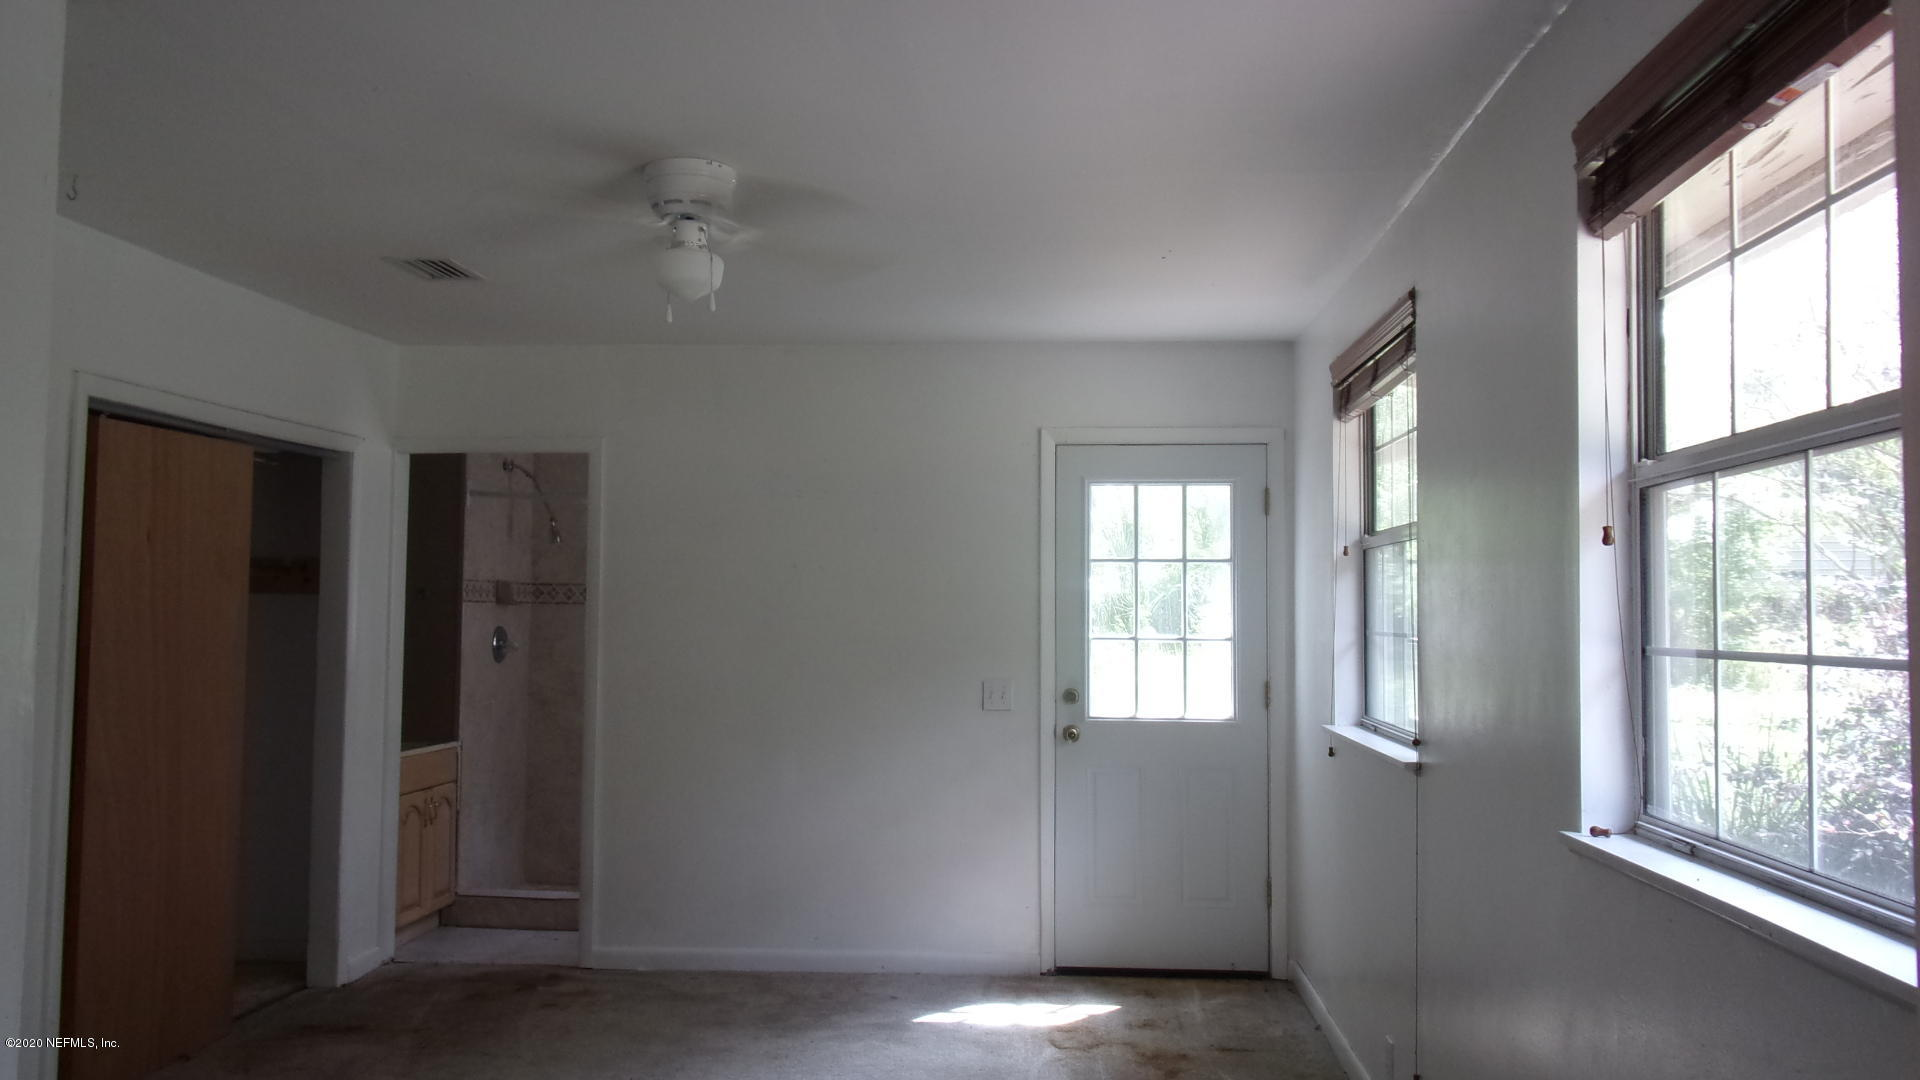 105 POINT OF WOODS, PALATKA, FLORIDA 32177, 3 Bedrooms Bedrooms, ,3 BathroomsBathrooms,Residential,For sale,POINT OF WOODS,1033016